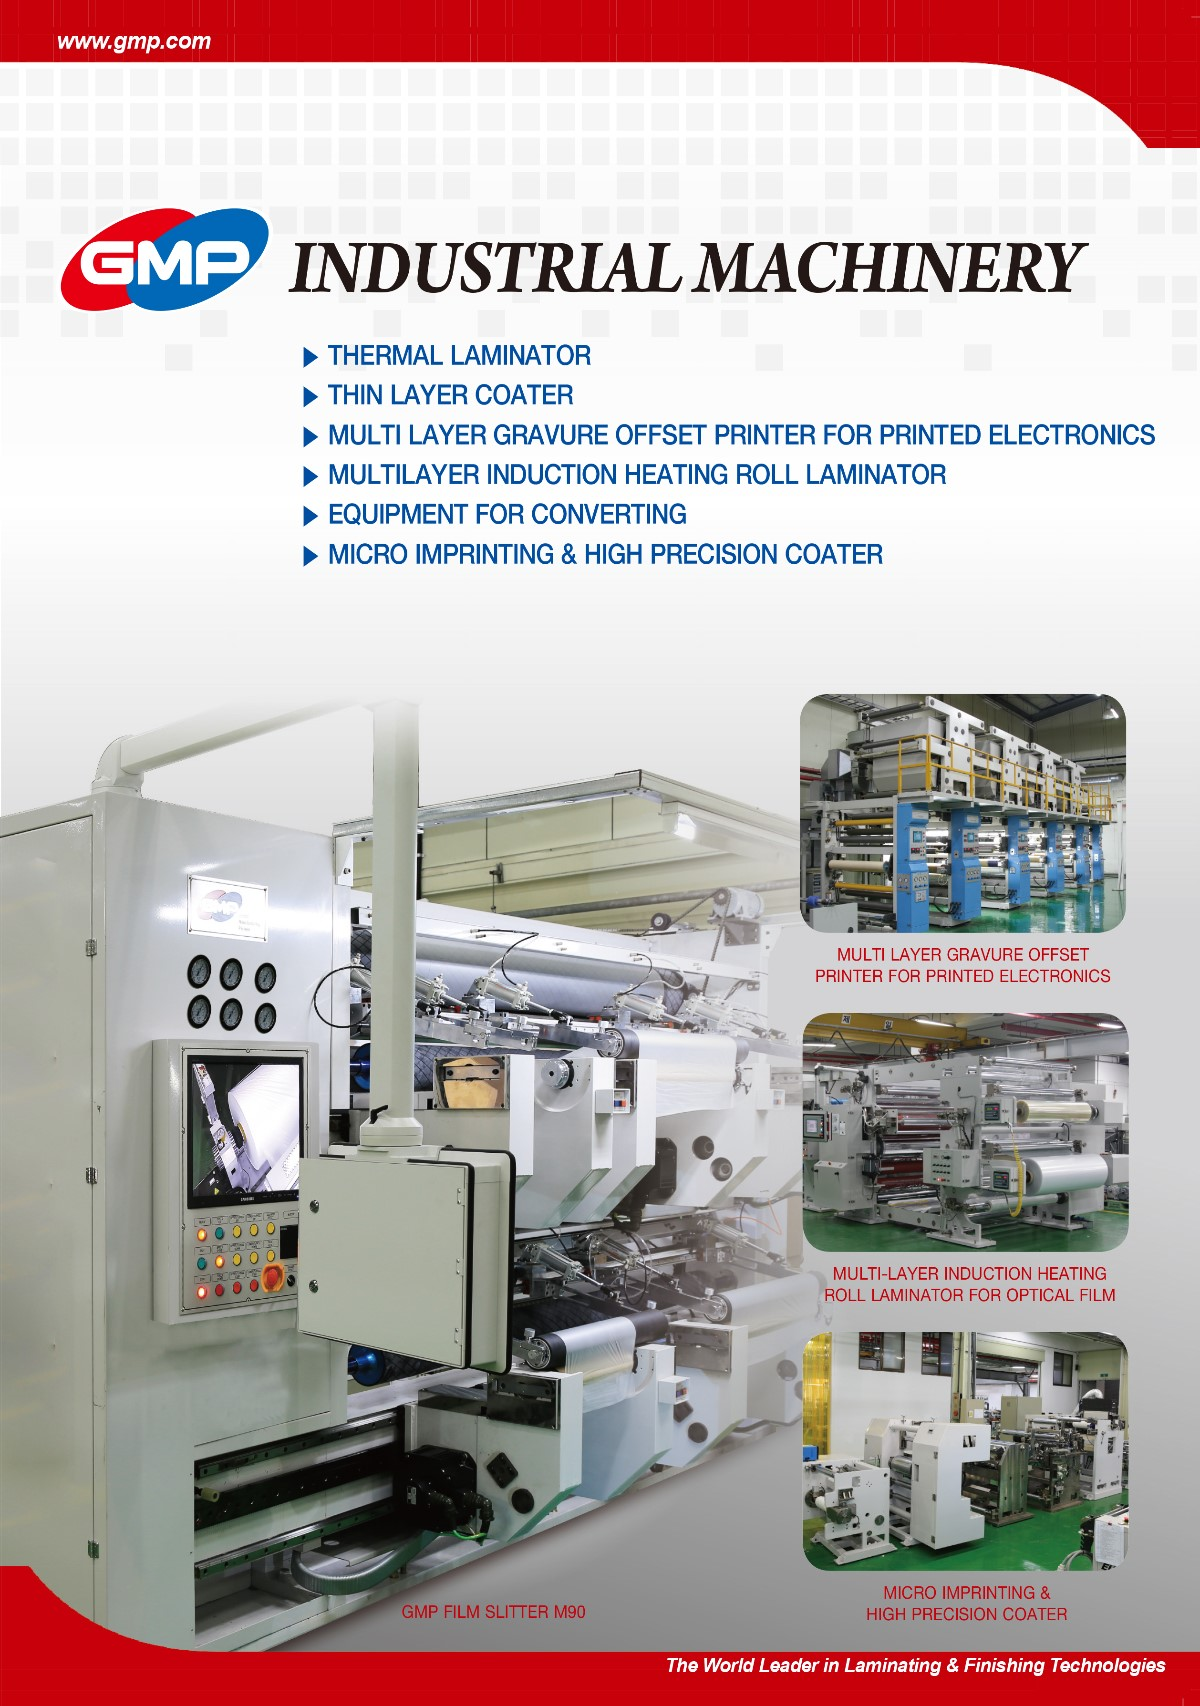 Industrial_machinery-1.jpg